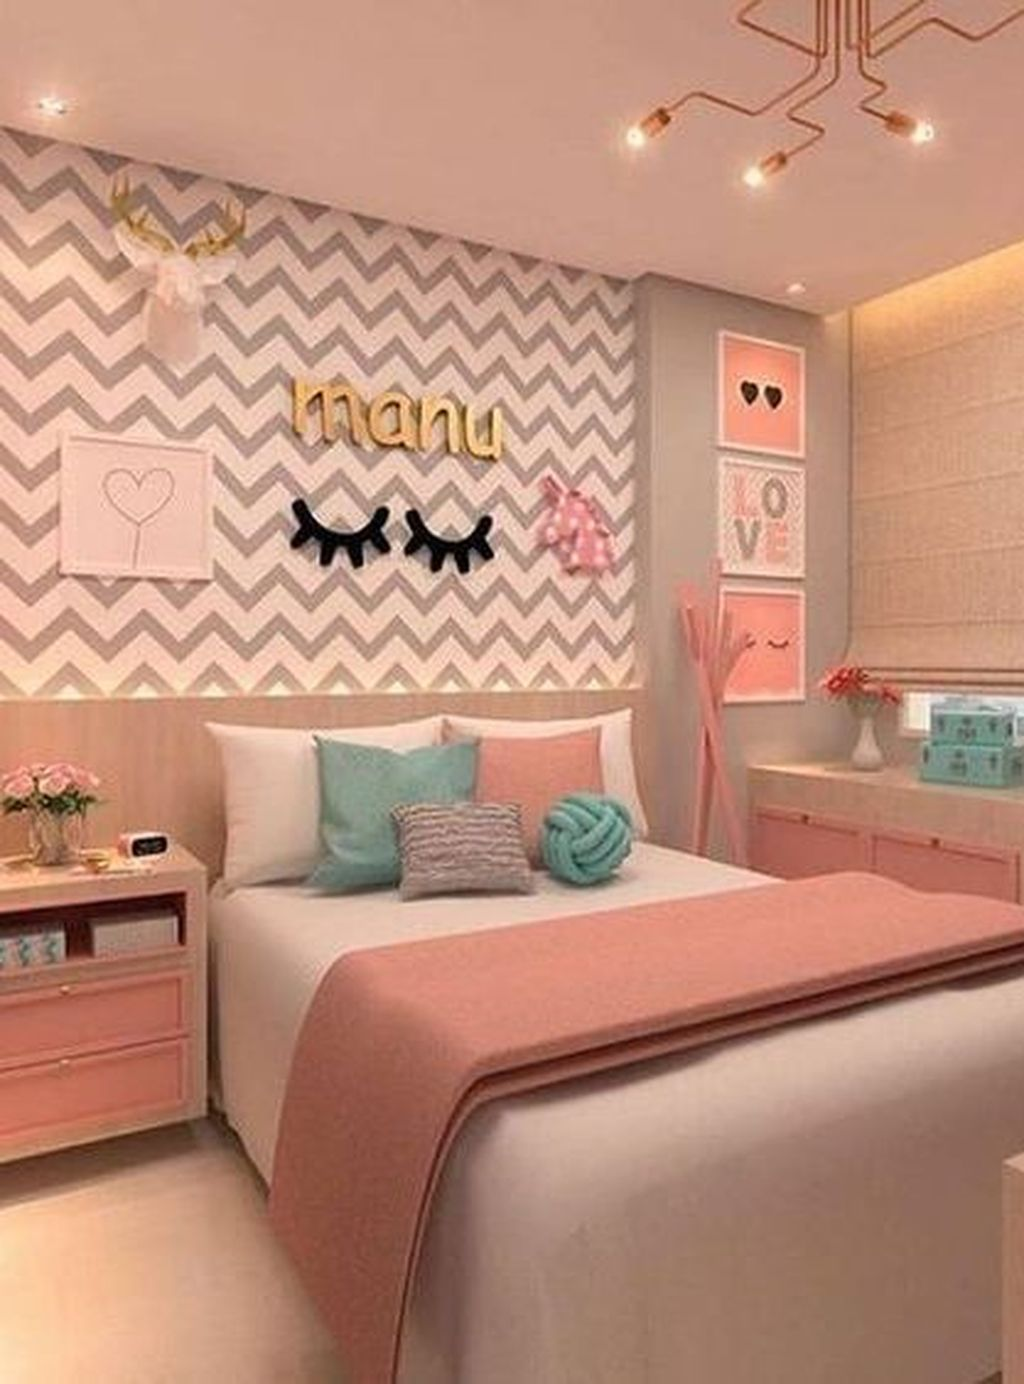 32 Awesome Bedroom Decoration Ideas That Looks Elegant Teenage Girl Bedroom Decor Girl Bedroom Decor Girl Bedroom Designs Fun bedroom decorating ideas